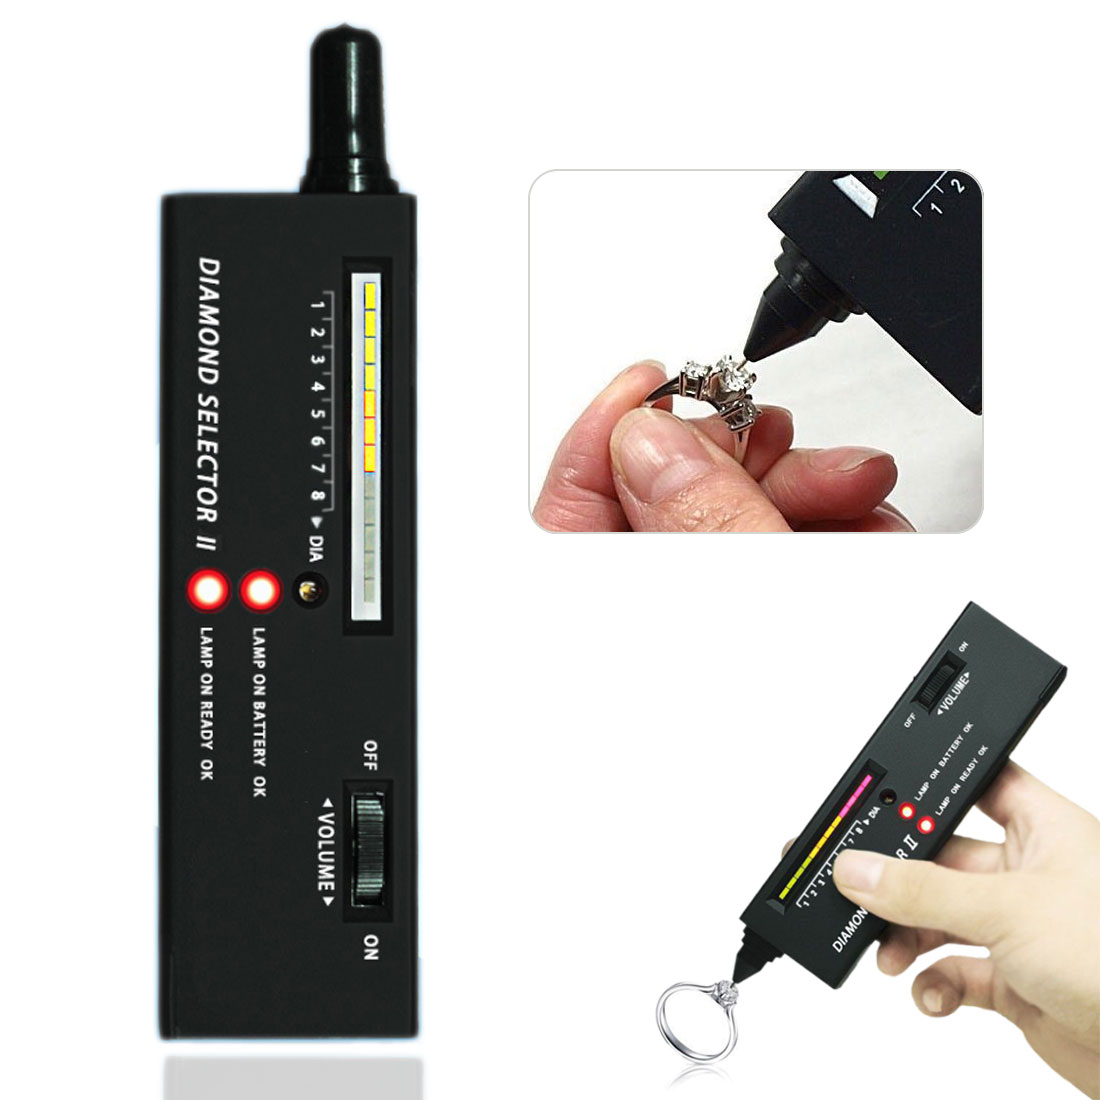 Diamond Tester Practical Diamond Selector Diamond Tester Gemstone Selector Gems LED Indicator Jewel Jewelry Tools Test